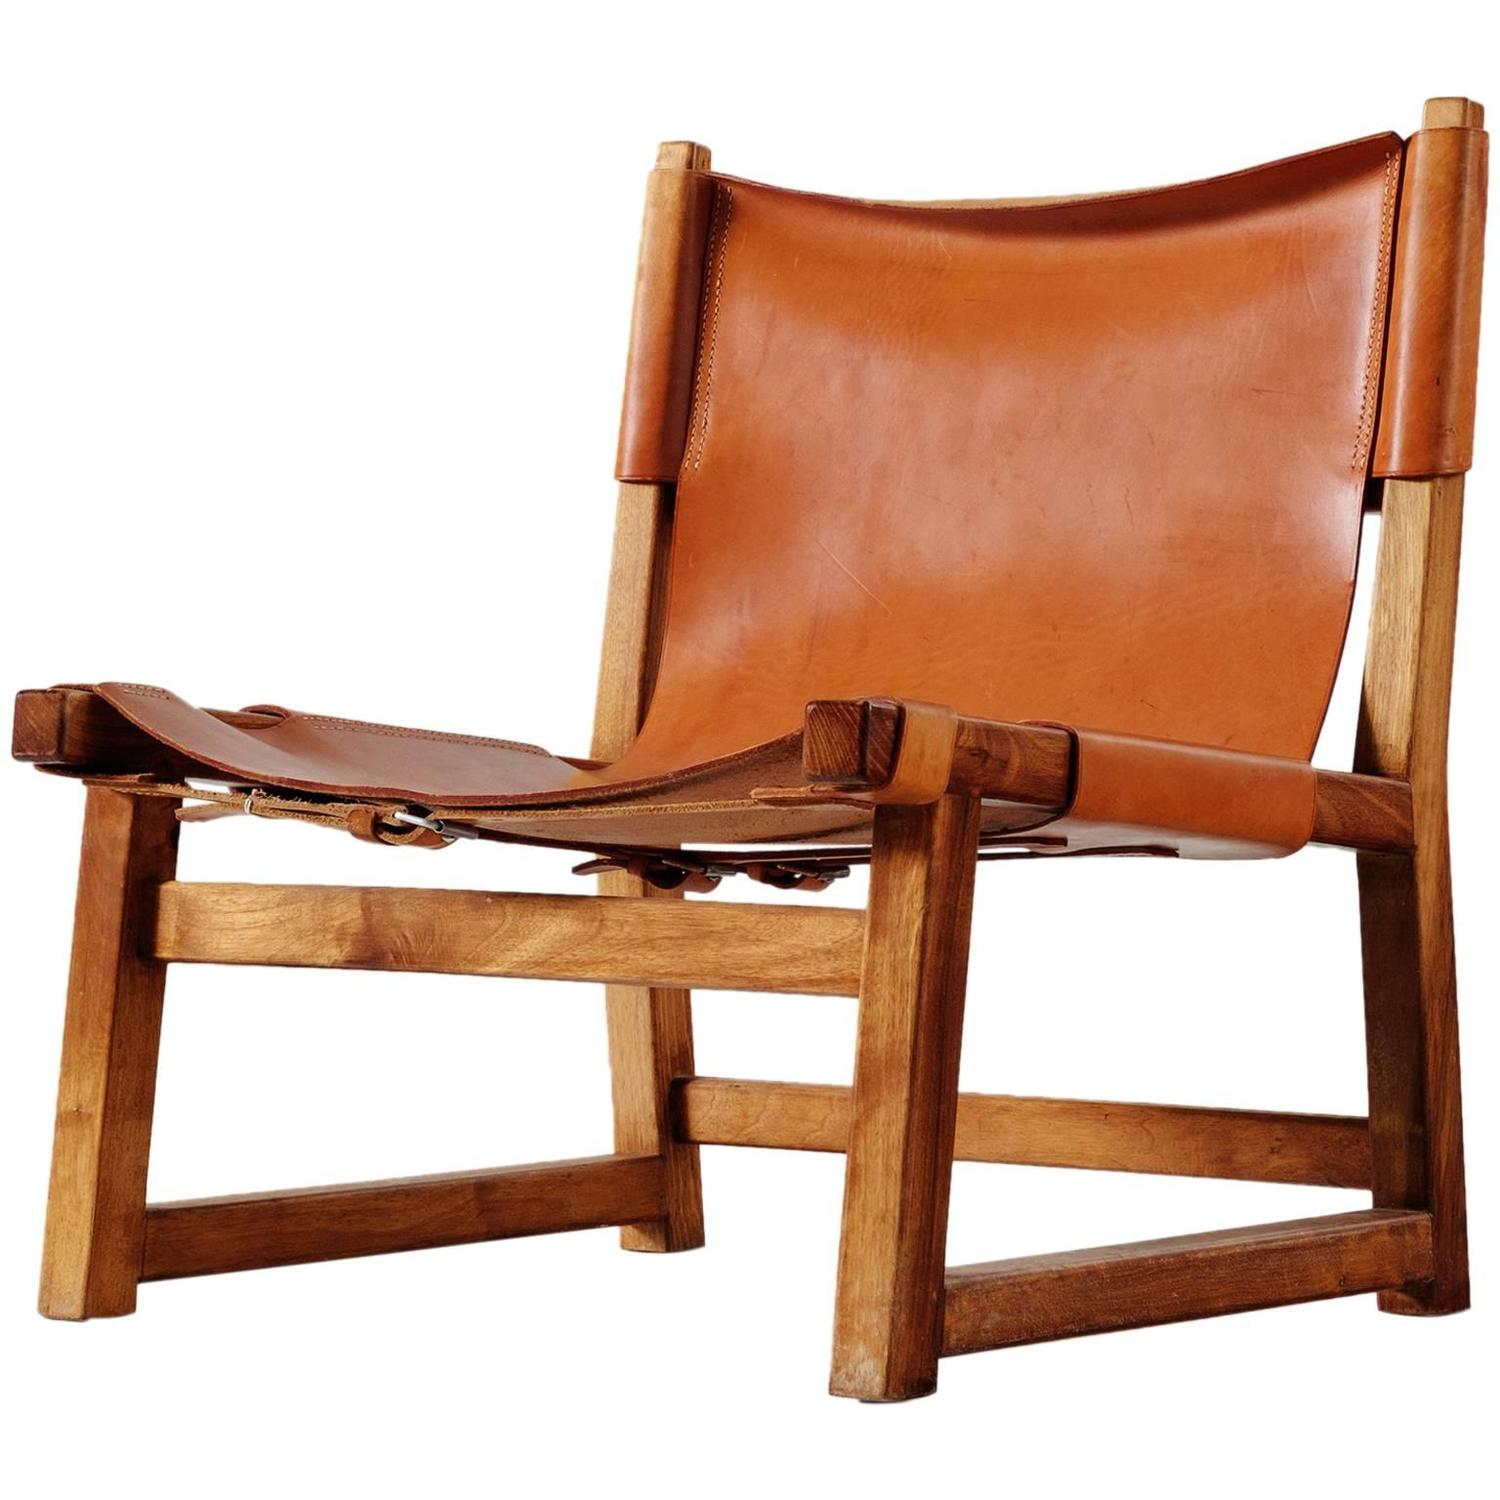 Scandinavian Hunting Chair in Cognac Leather For Sale at 1stdibs